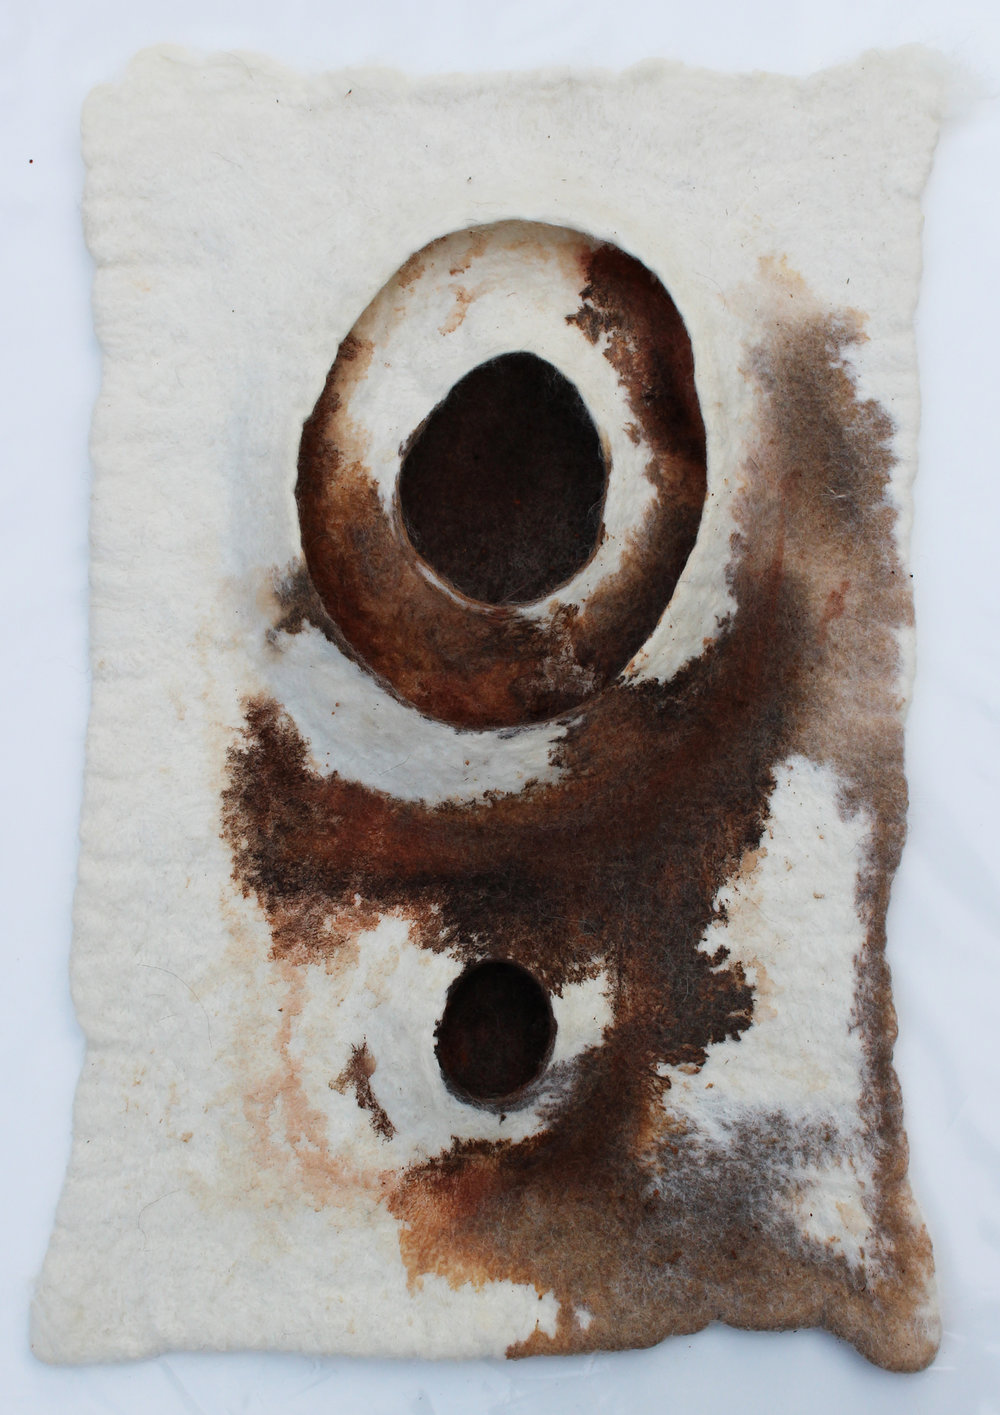 Ochre II - White Merino, Corriedale, Romney Marsh, dyed with hand-painted earth pigment